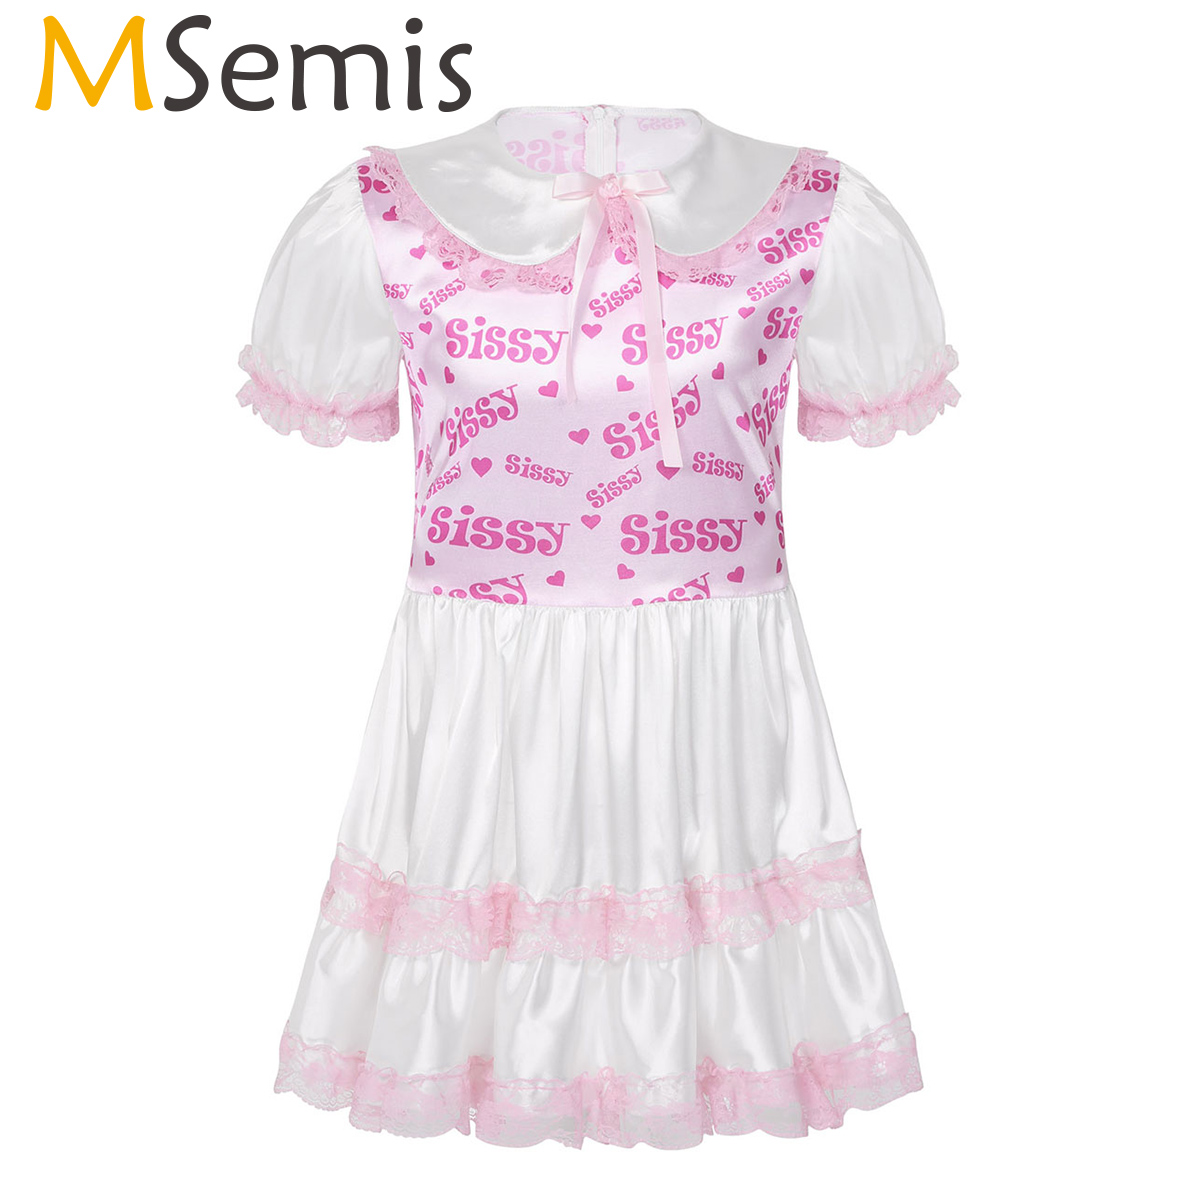 MSemis Men Sissy Dress Shiny Satin Doll Collar Lace Puff Sleeves Sexy Lingerie Sissy Printed Crossdresser Dress Clubwear Costume